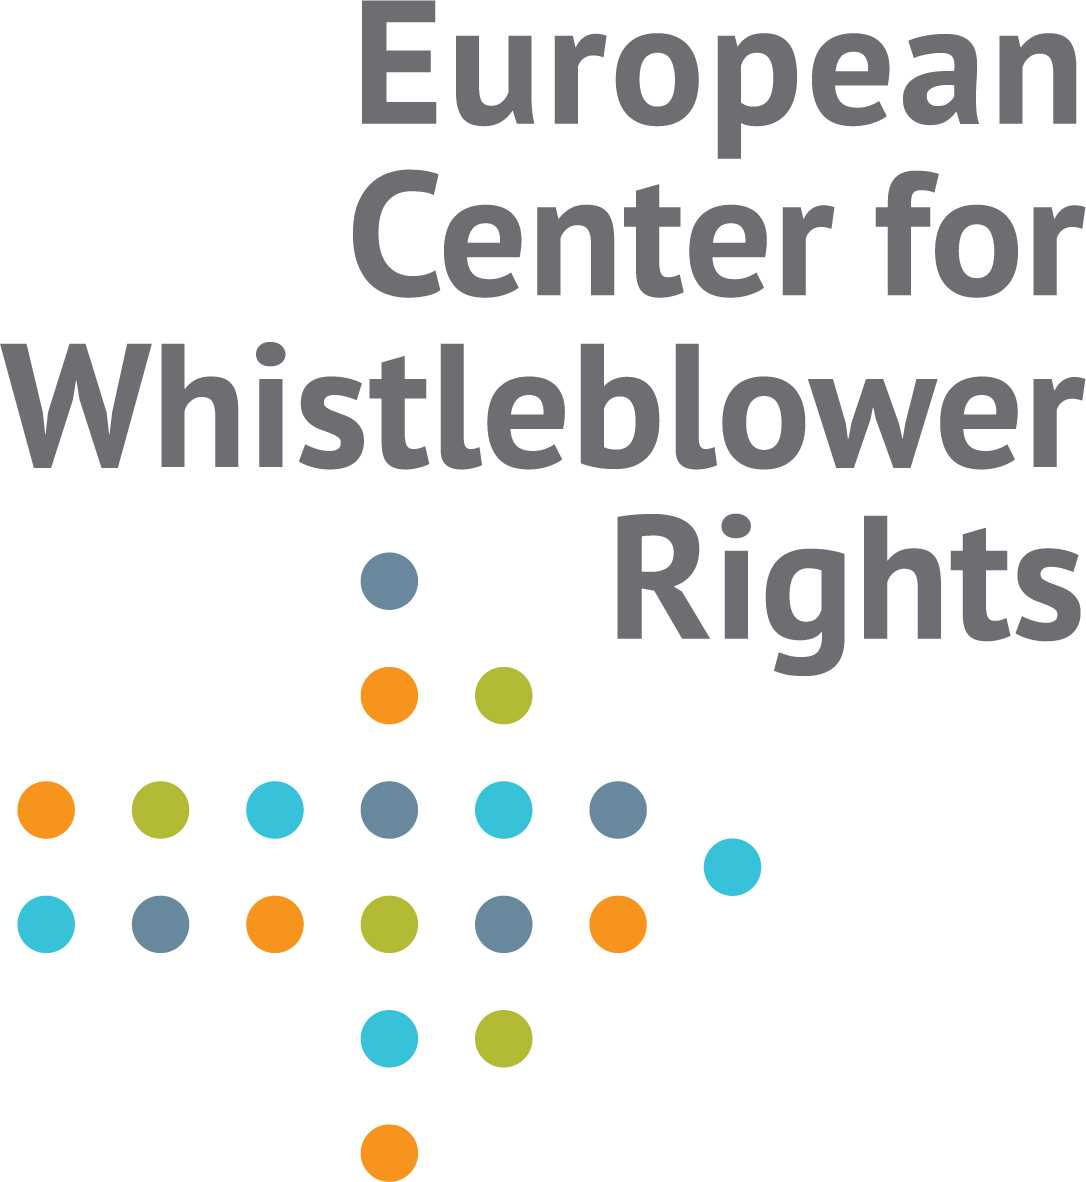 European Center for Whistleblower Rights